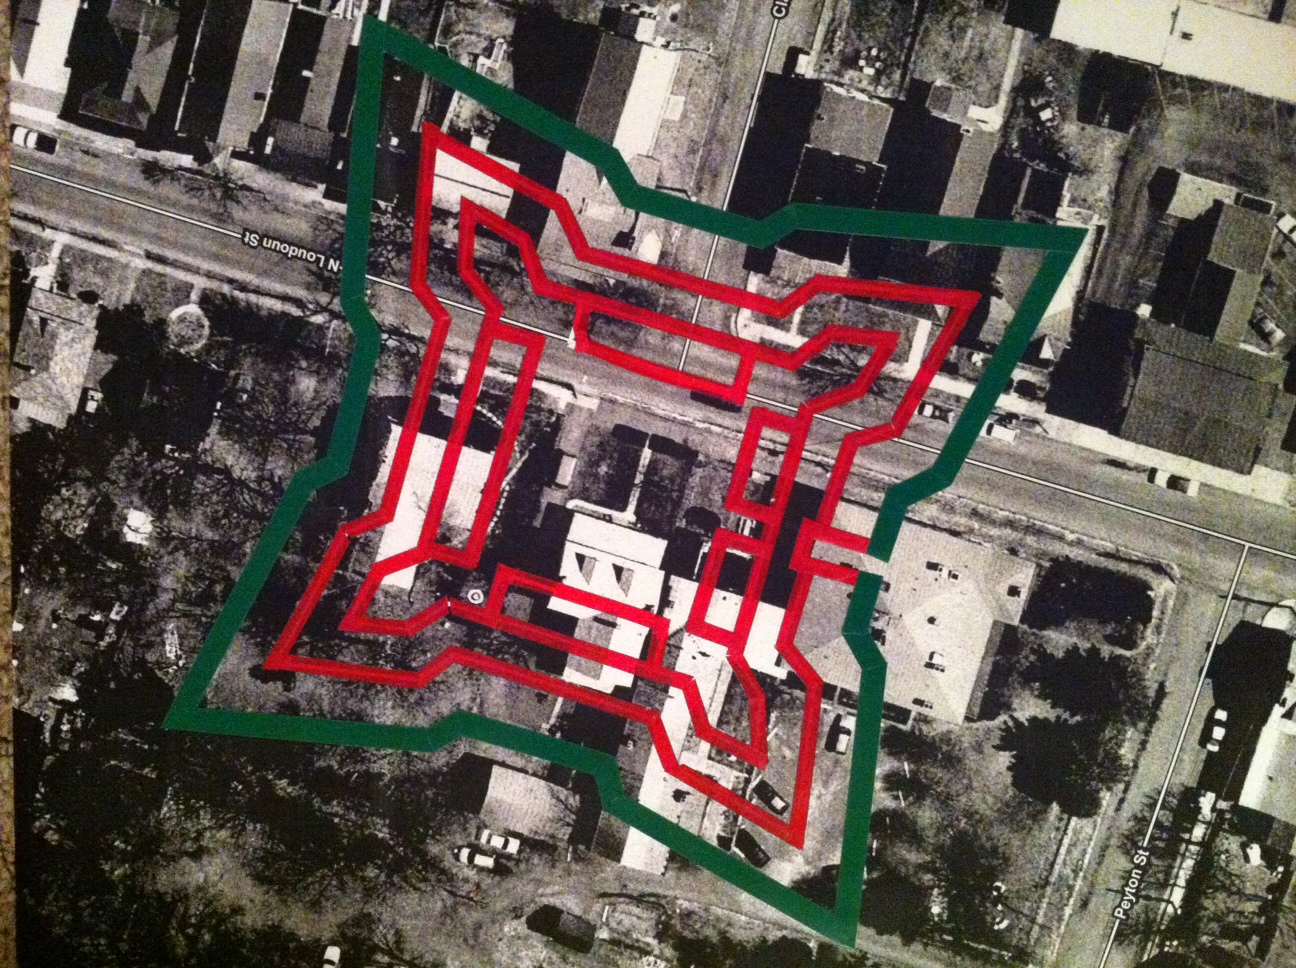 Fort Outline, courtesy of the French and Indian War Foundation